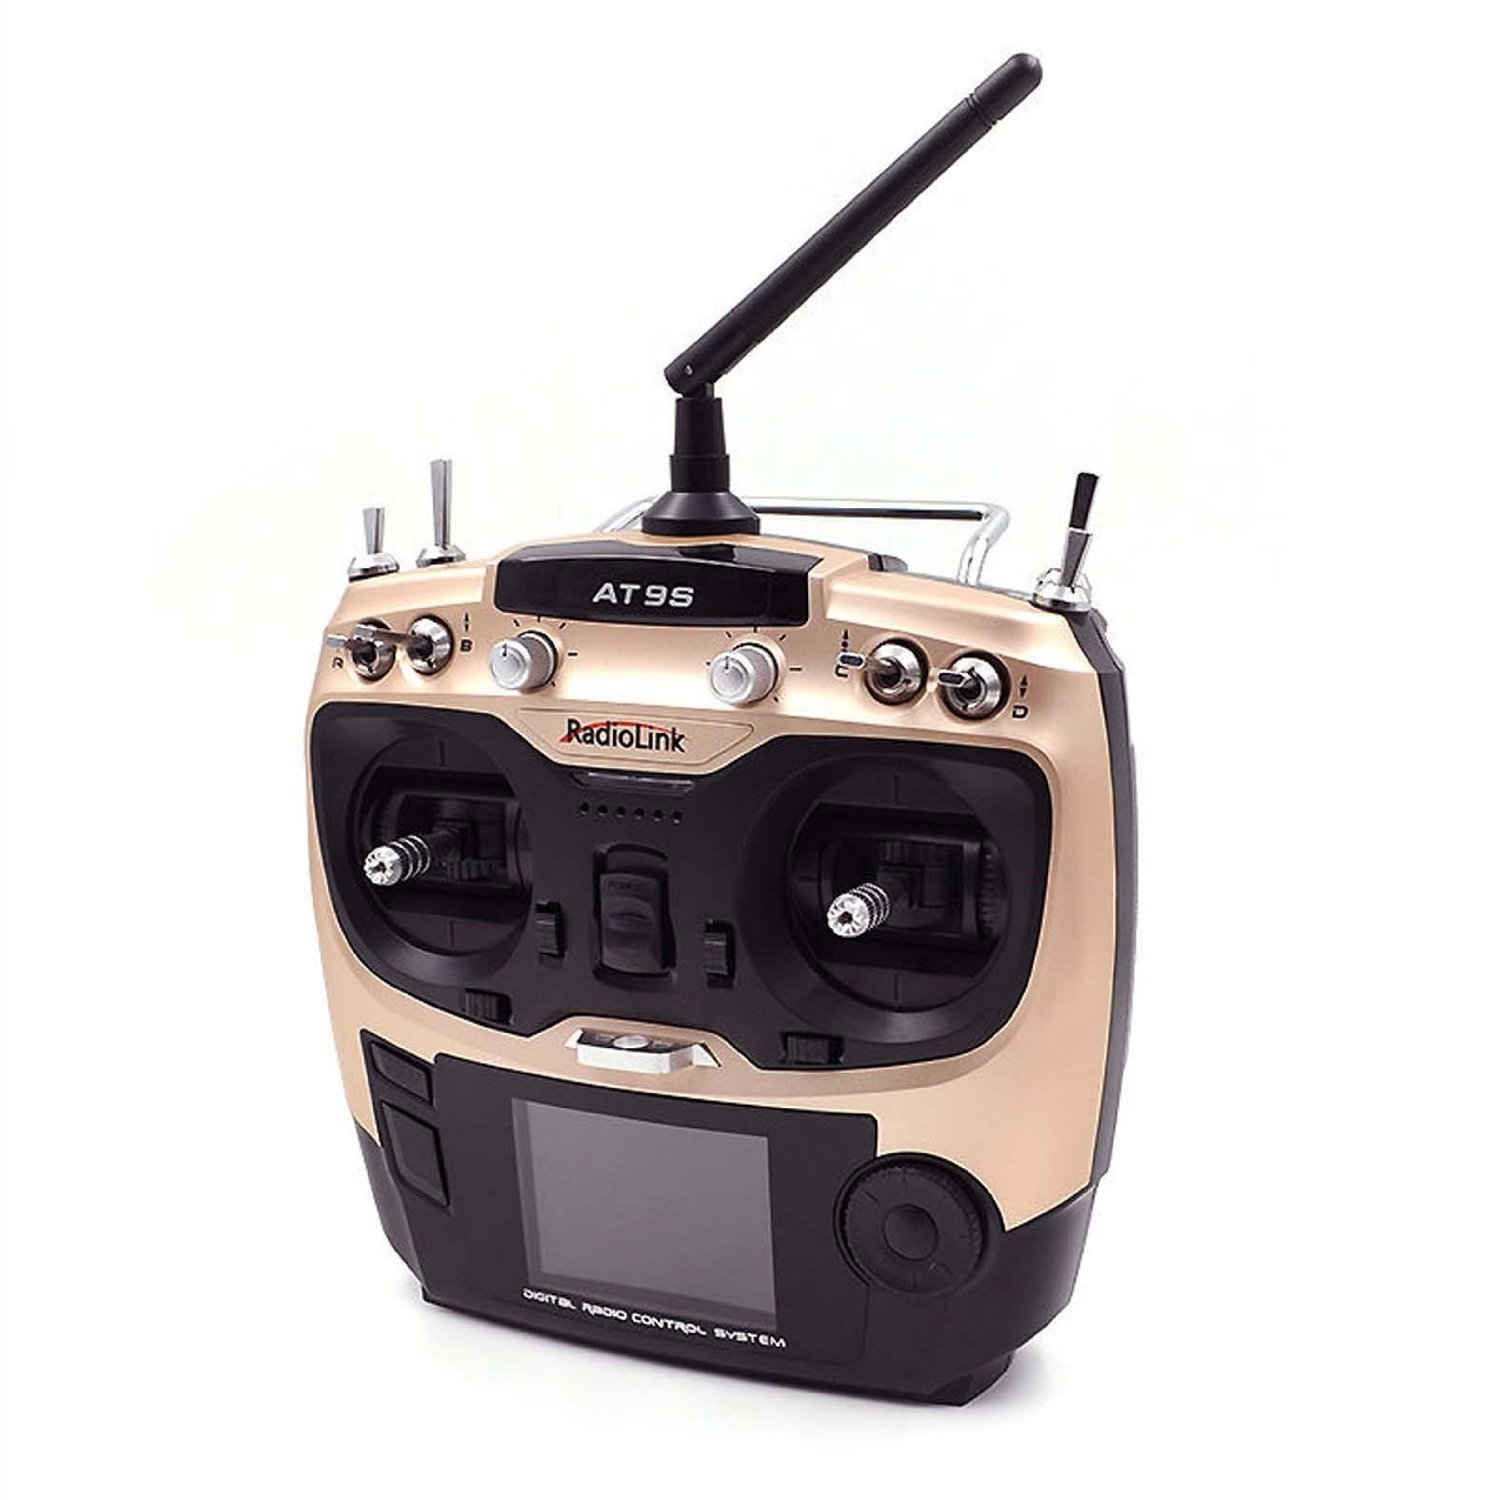 Radiolink 2.4G AT9S R9DS Radio Control System 9CH Transmitter /& Receiver Mode 2